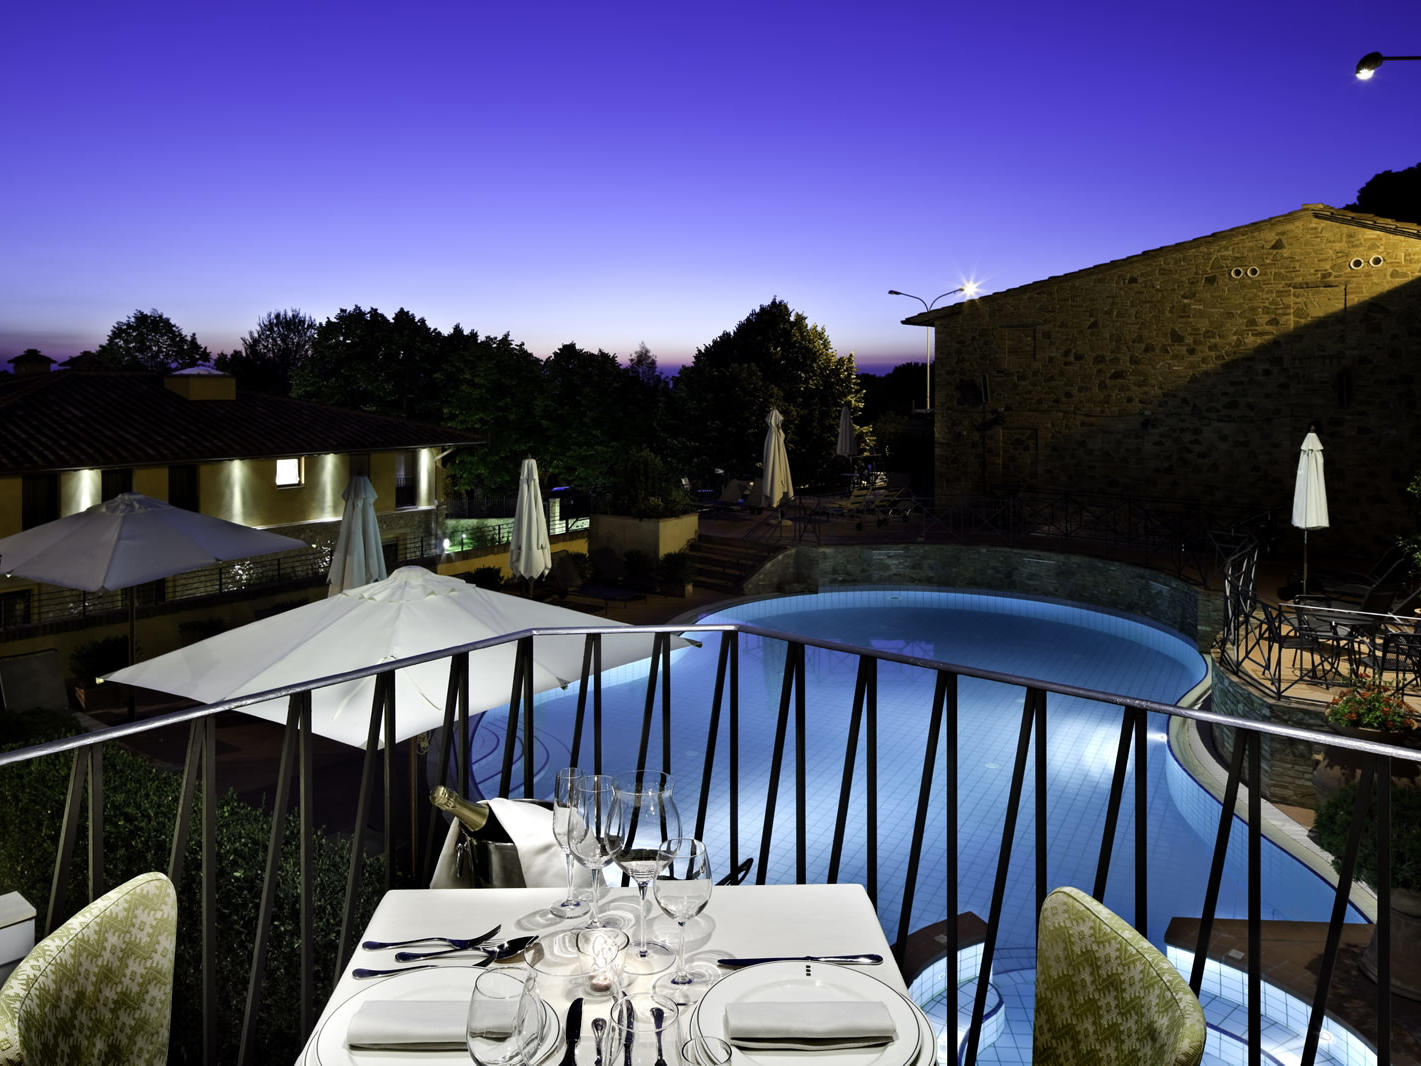 dining table on balcony overlooking swimming pool at night Unahotels Palazzo Mannaioni Toscana